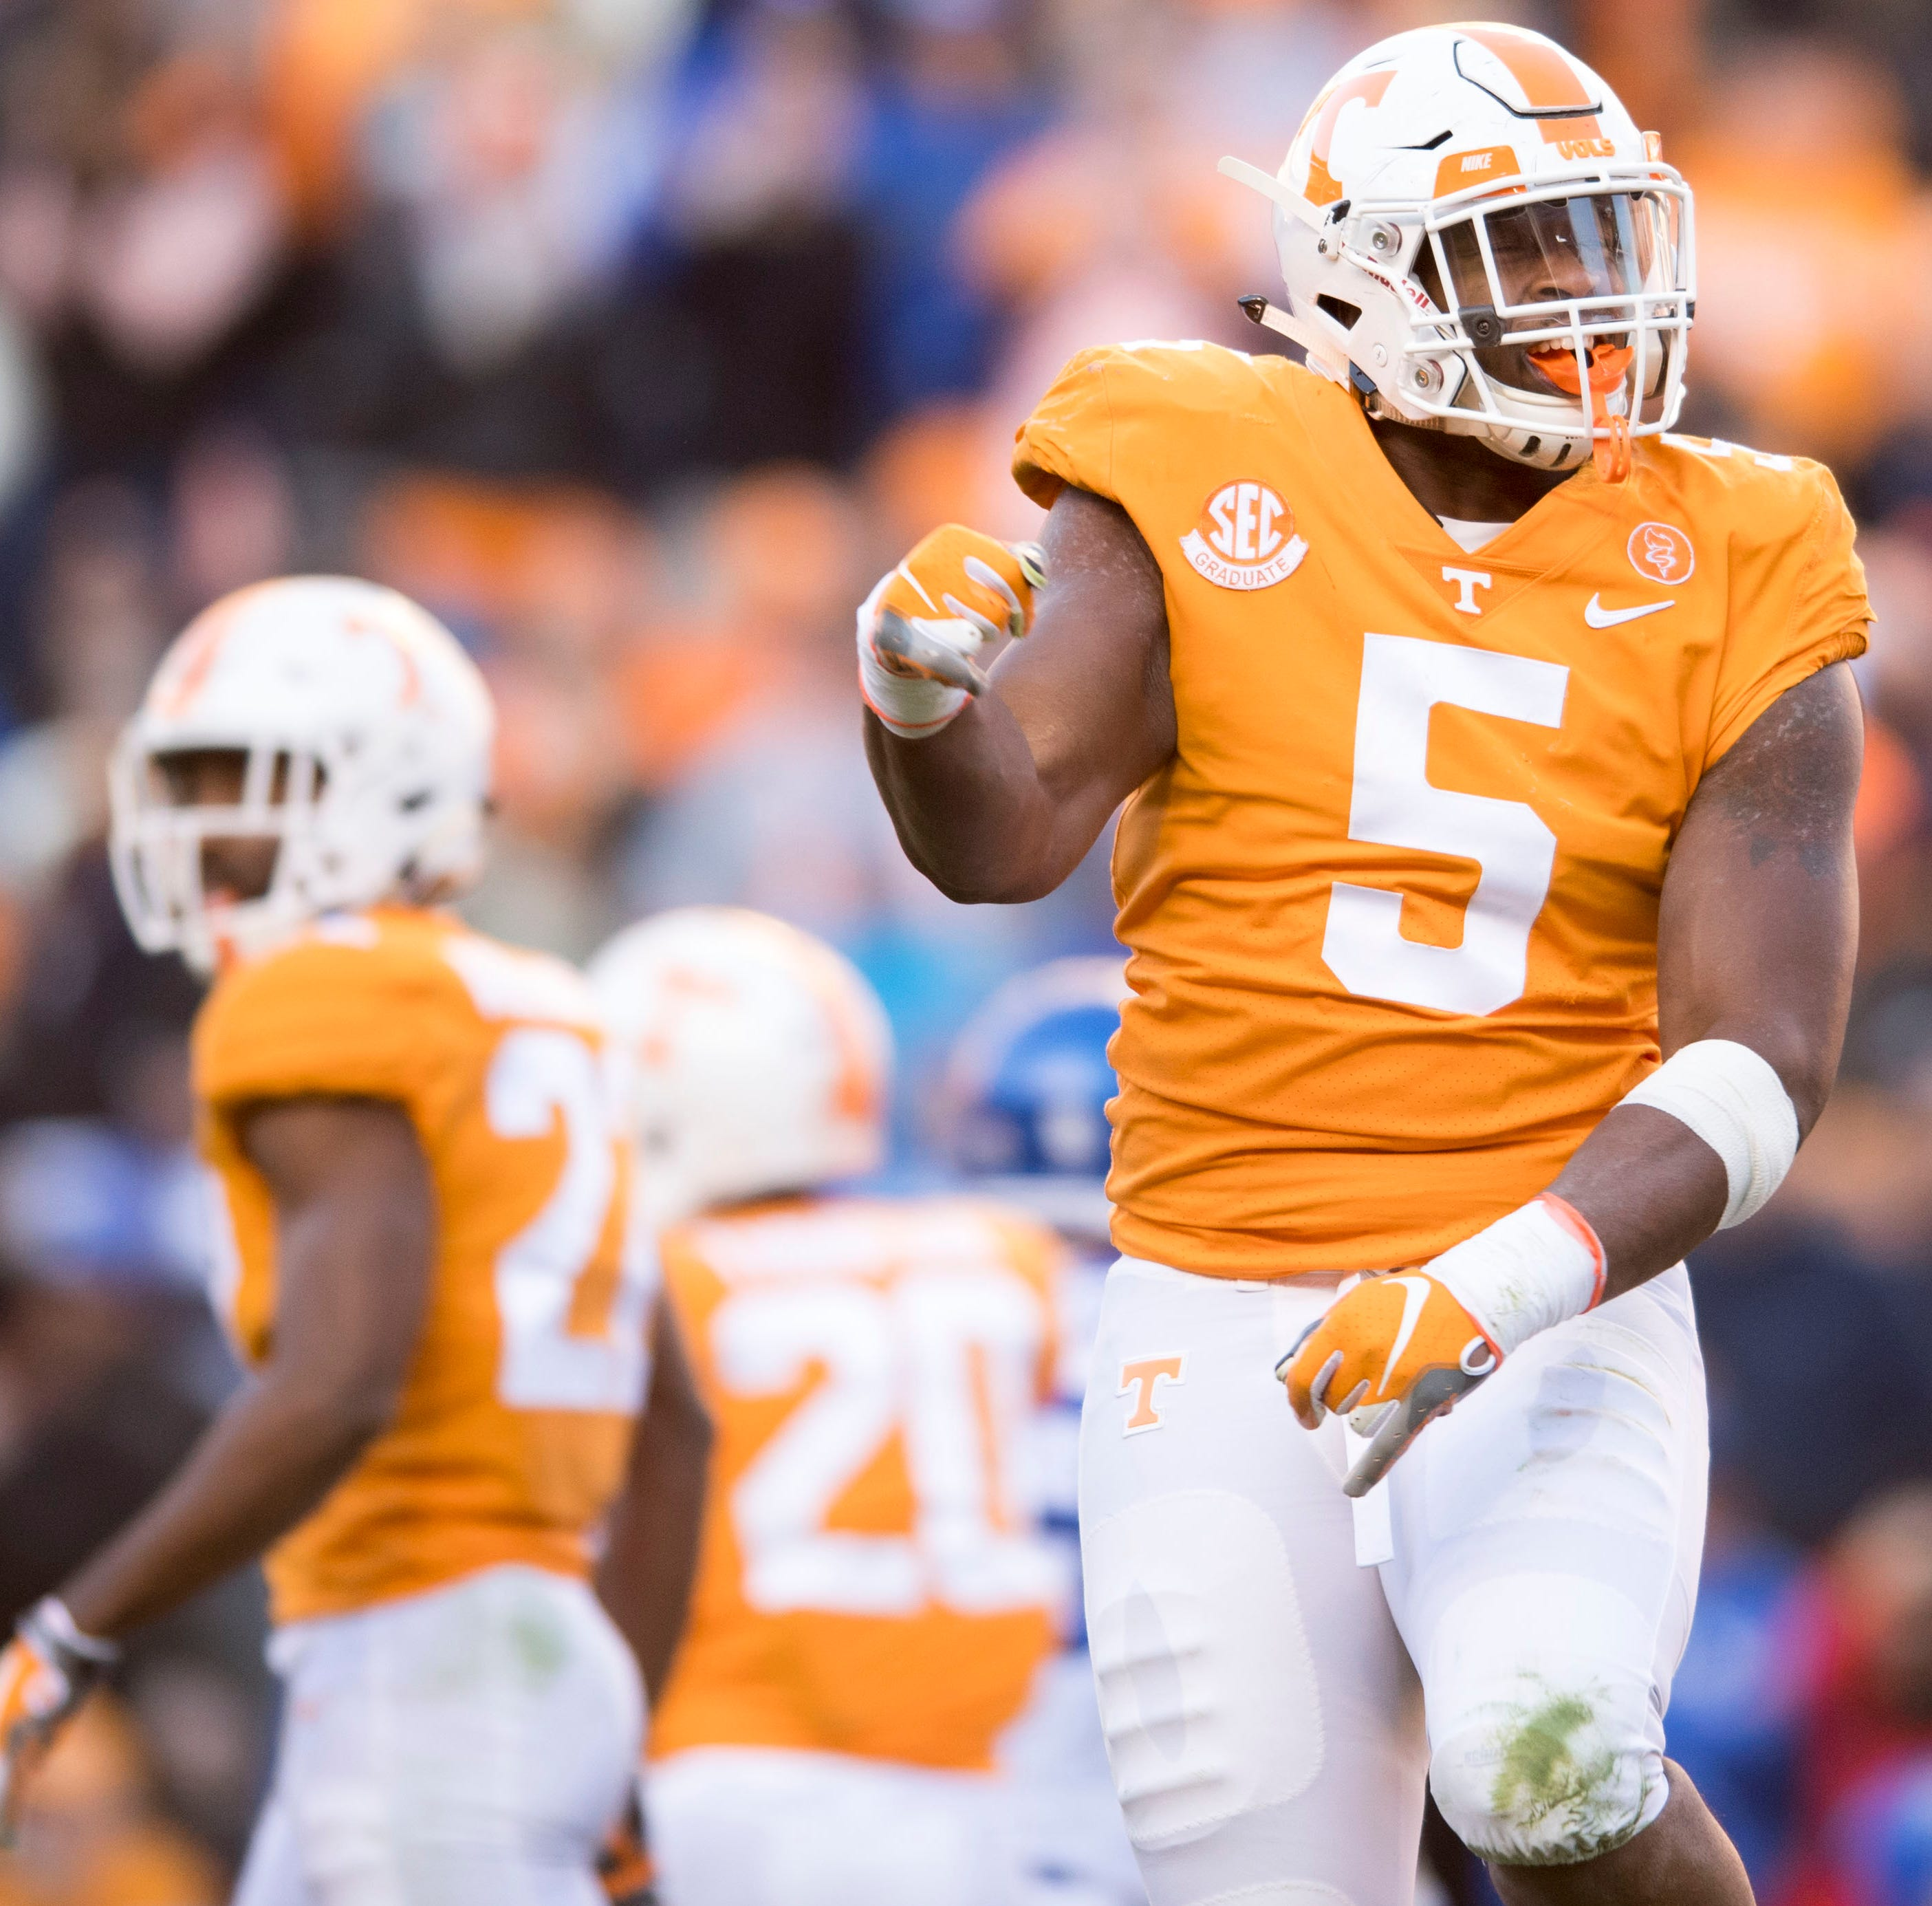 Grading the UT Vols: Everything works for Tennessee in dominating Kentucky